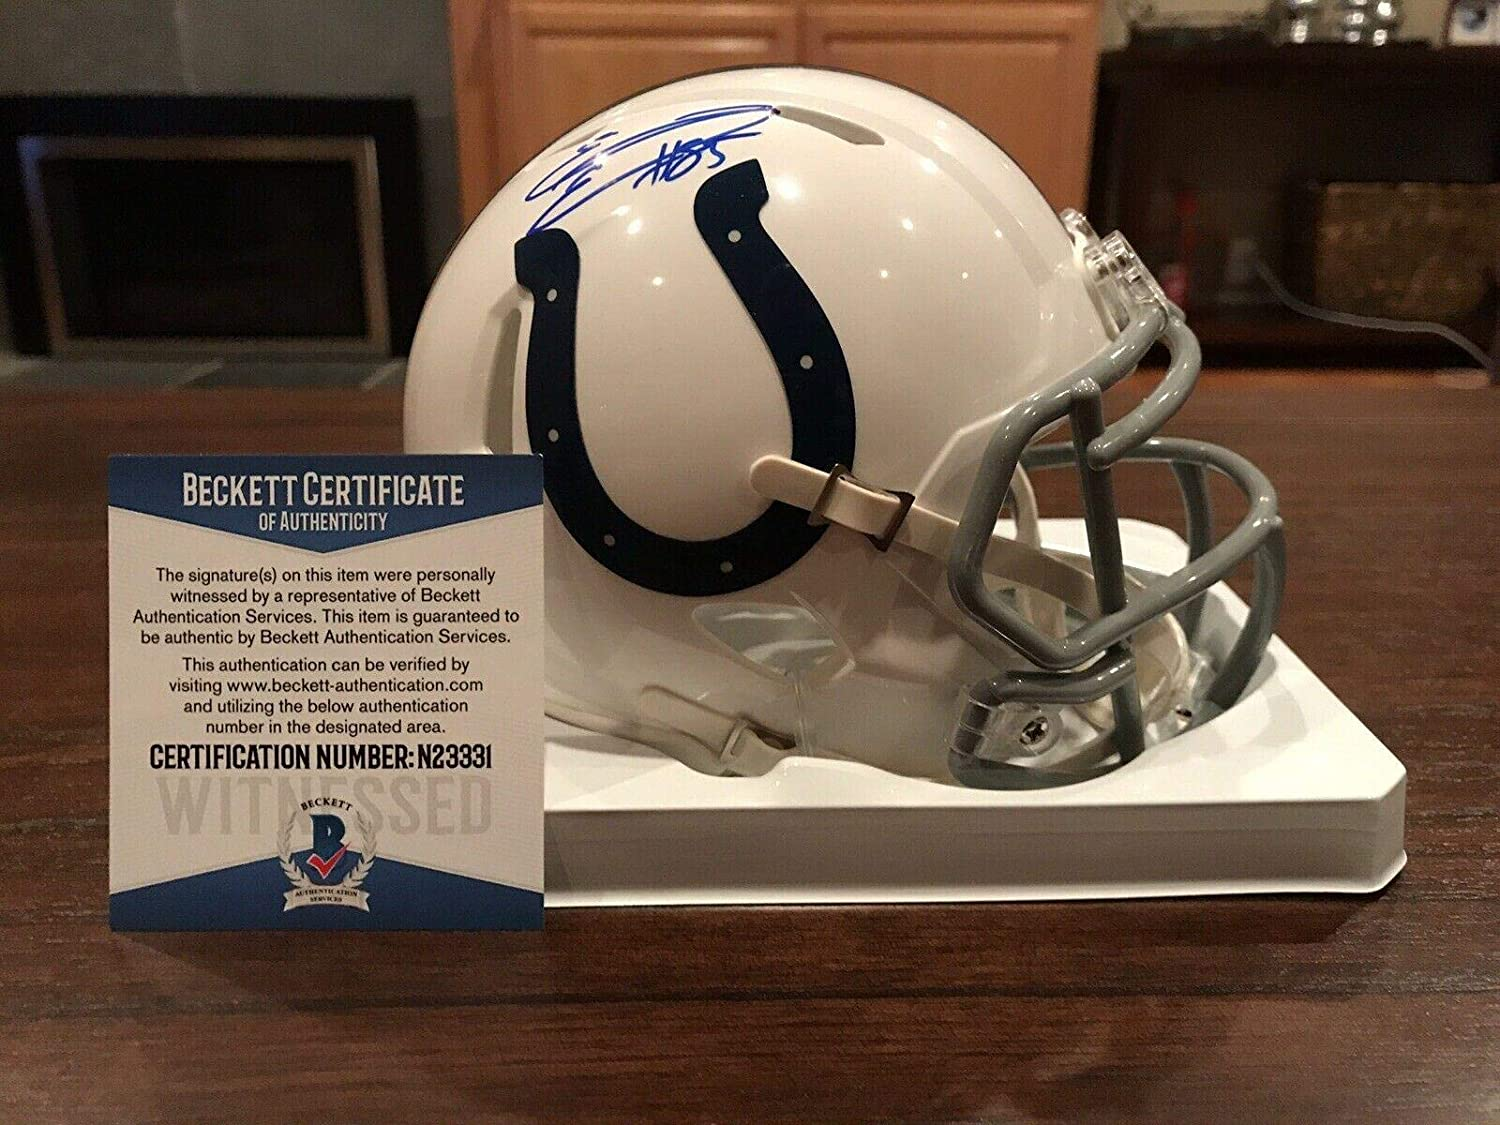 Eric Ebron Autographed Mini HelmetColt Riddell Speed Witness BeckettBeckett AuthenticationAutographed NFL Mini Helmets